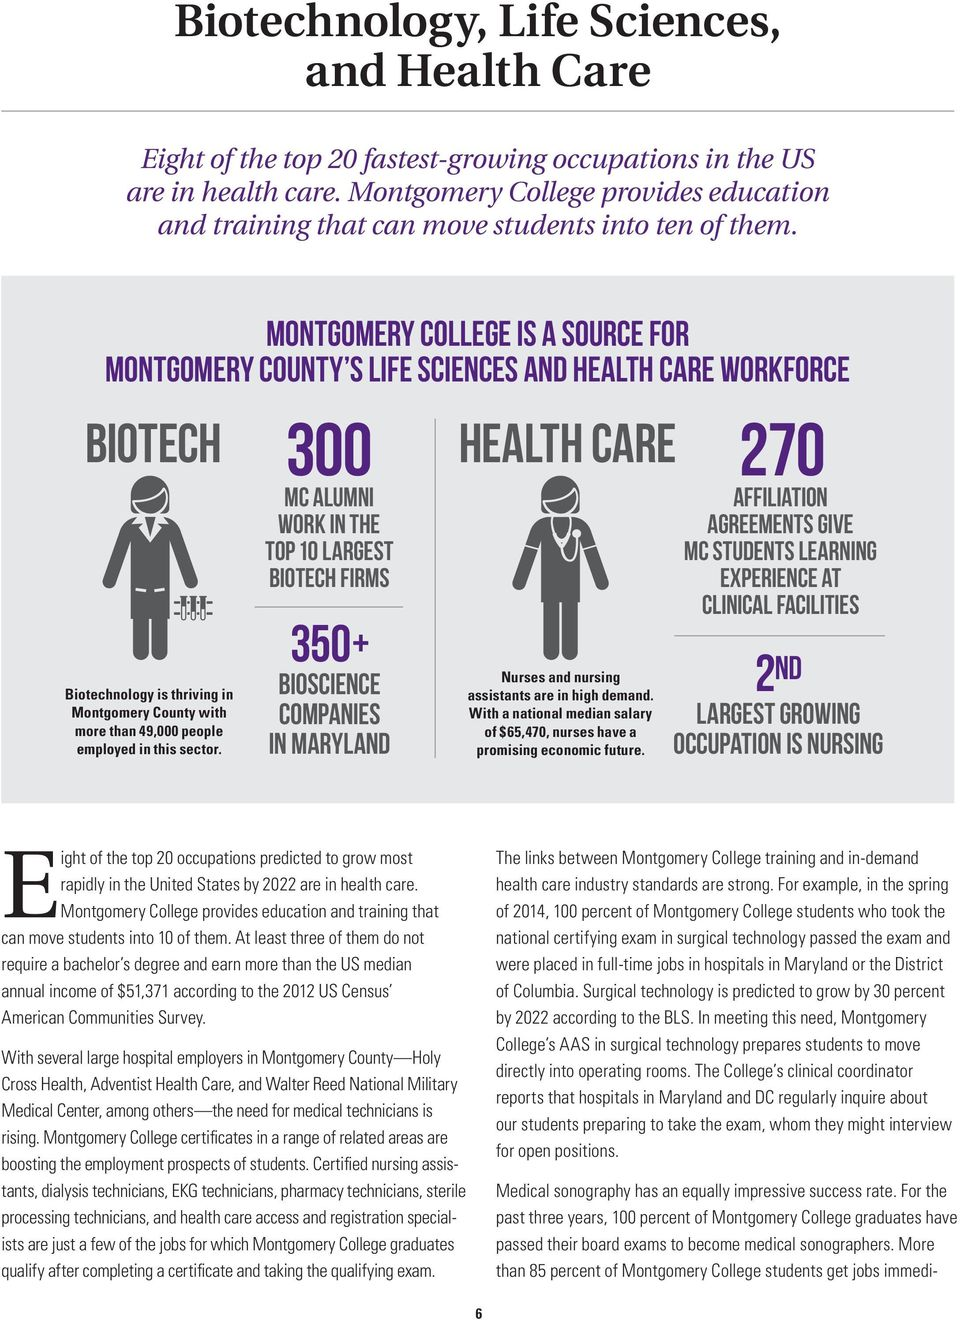 Montgomery College is a source for Montgomery county s life sciences and health care workforce biotech Biotechnology is thriving in Montgomery County with more than 49,000 people employed in this